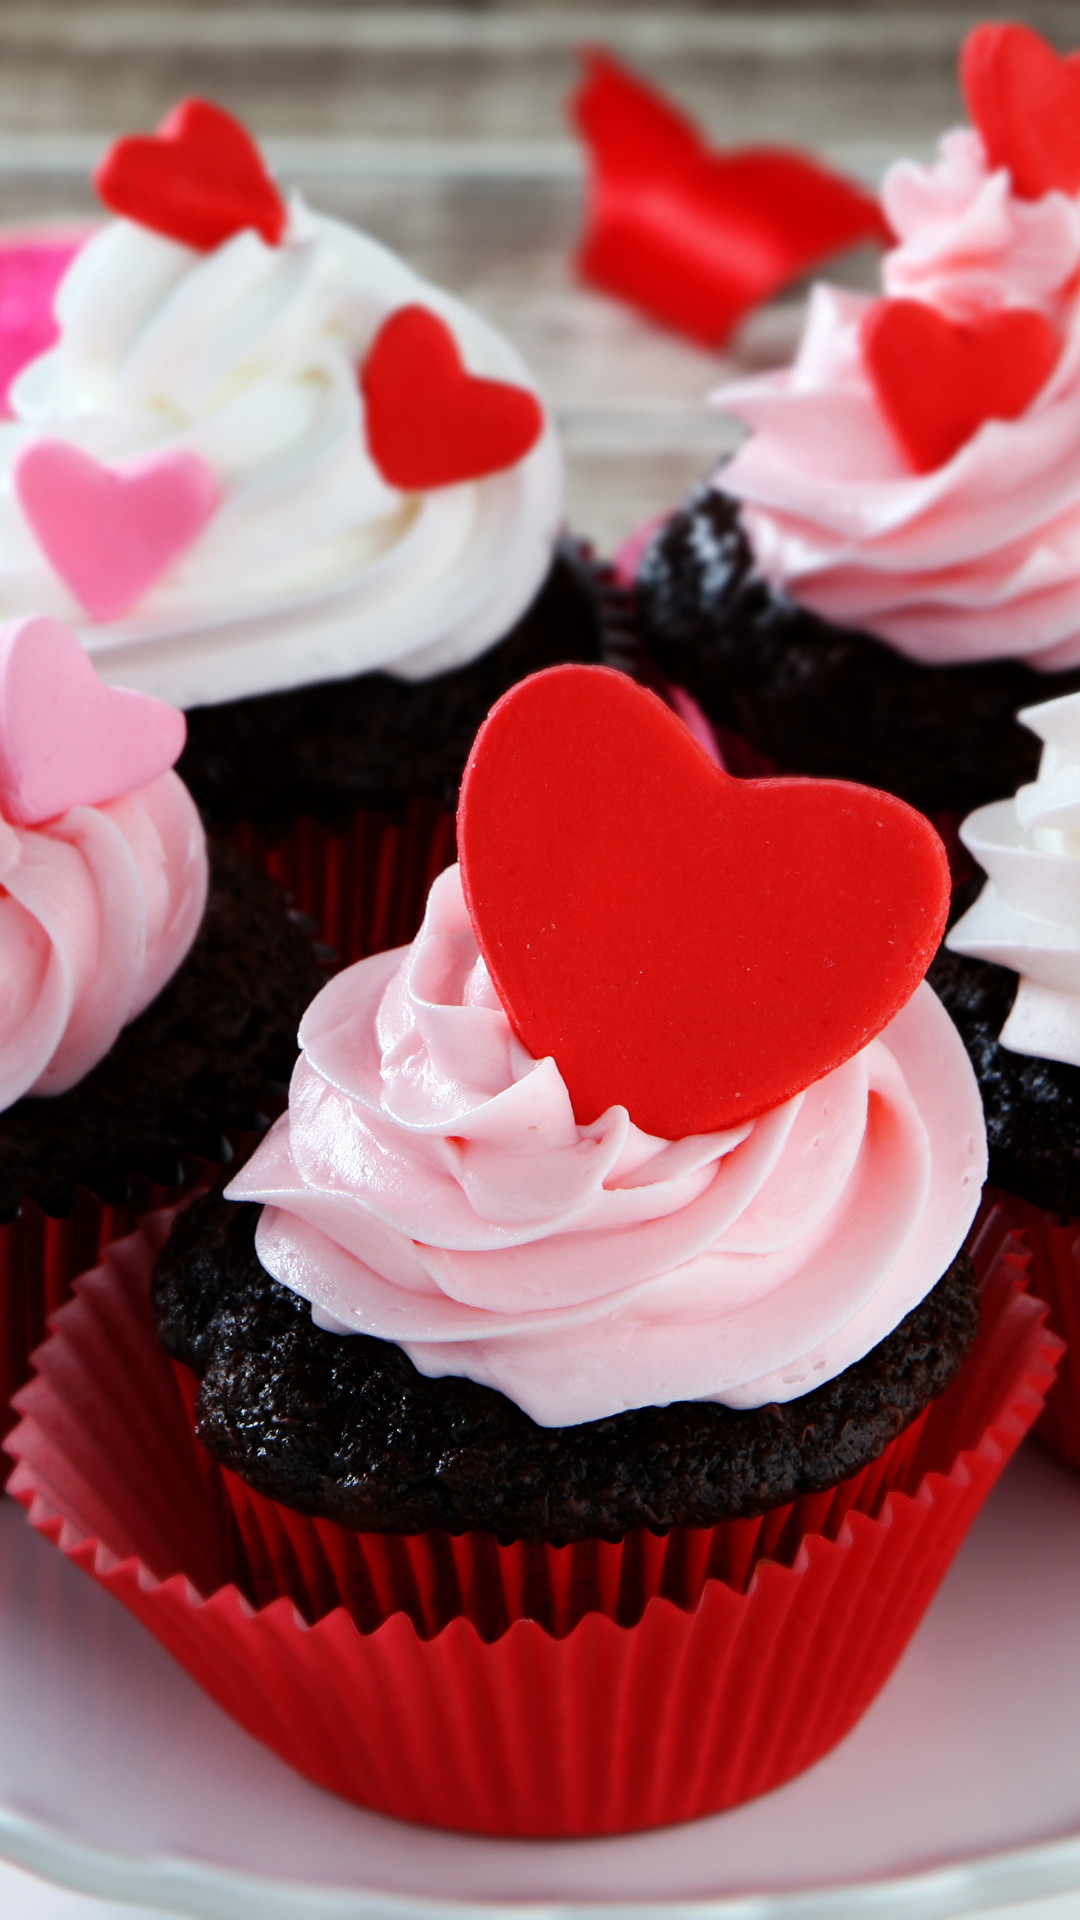 Res: 1080x1920, Wallpapers Heart fairy cake Food Cake Sweets  Cupcake